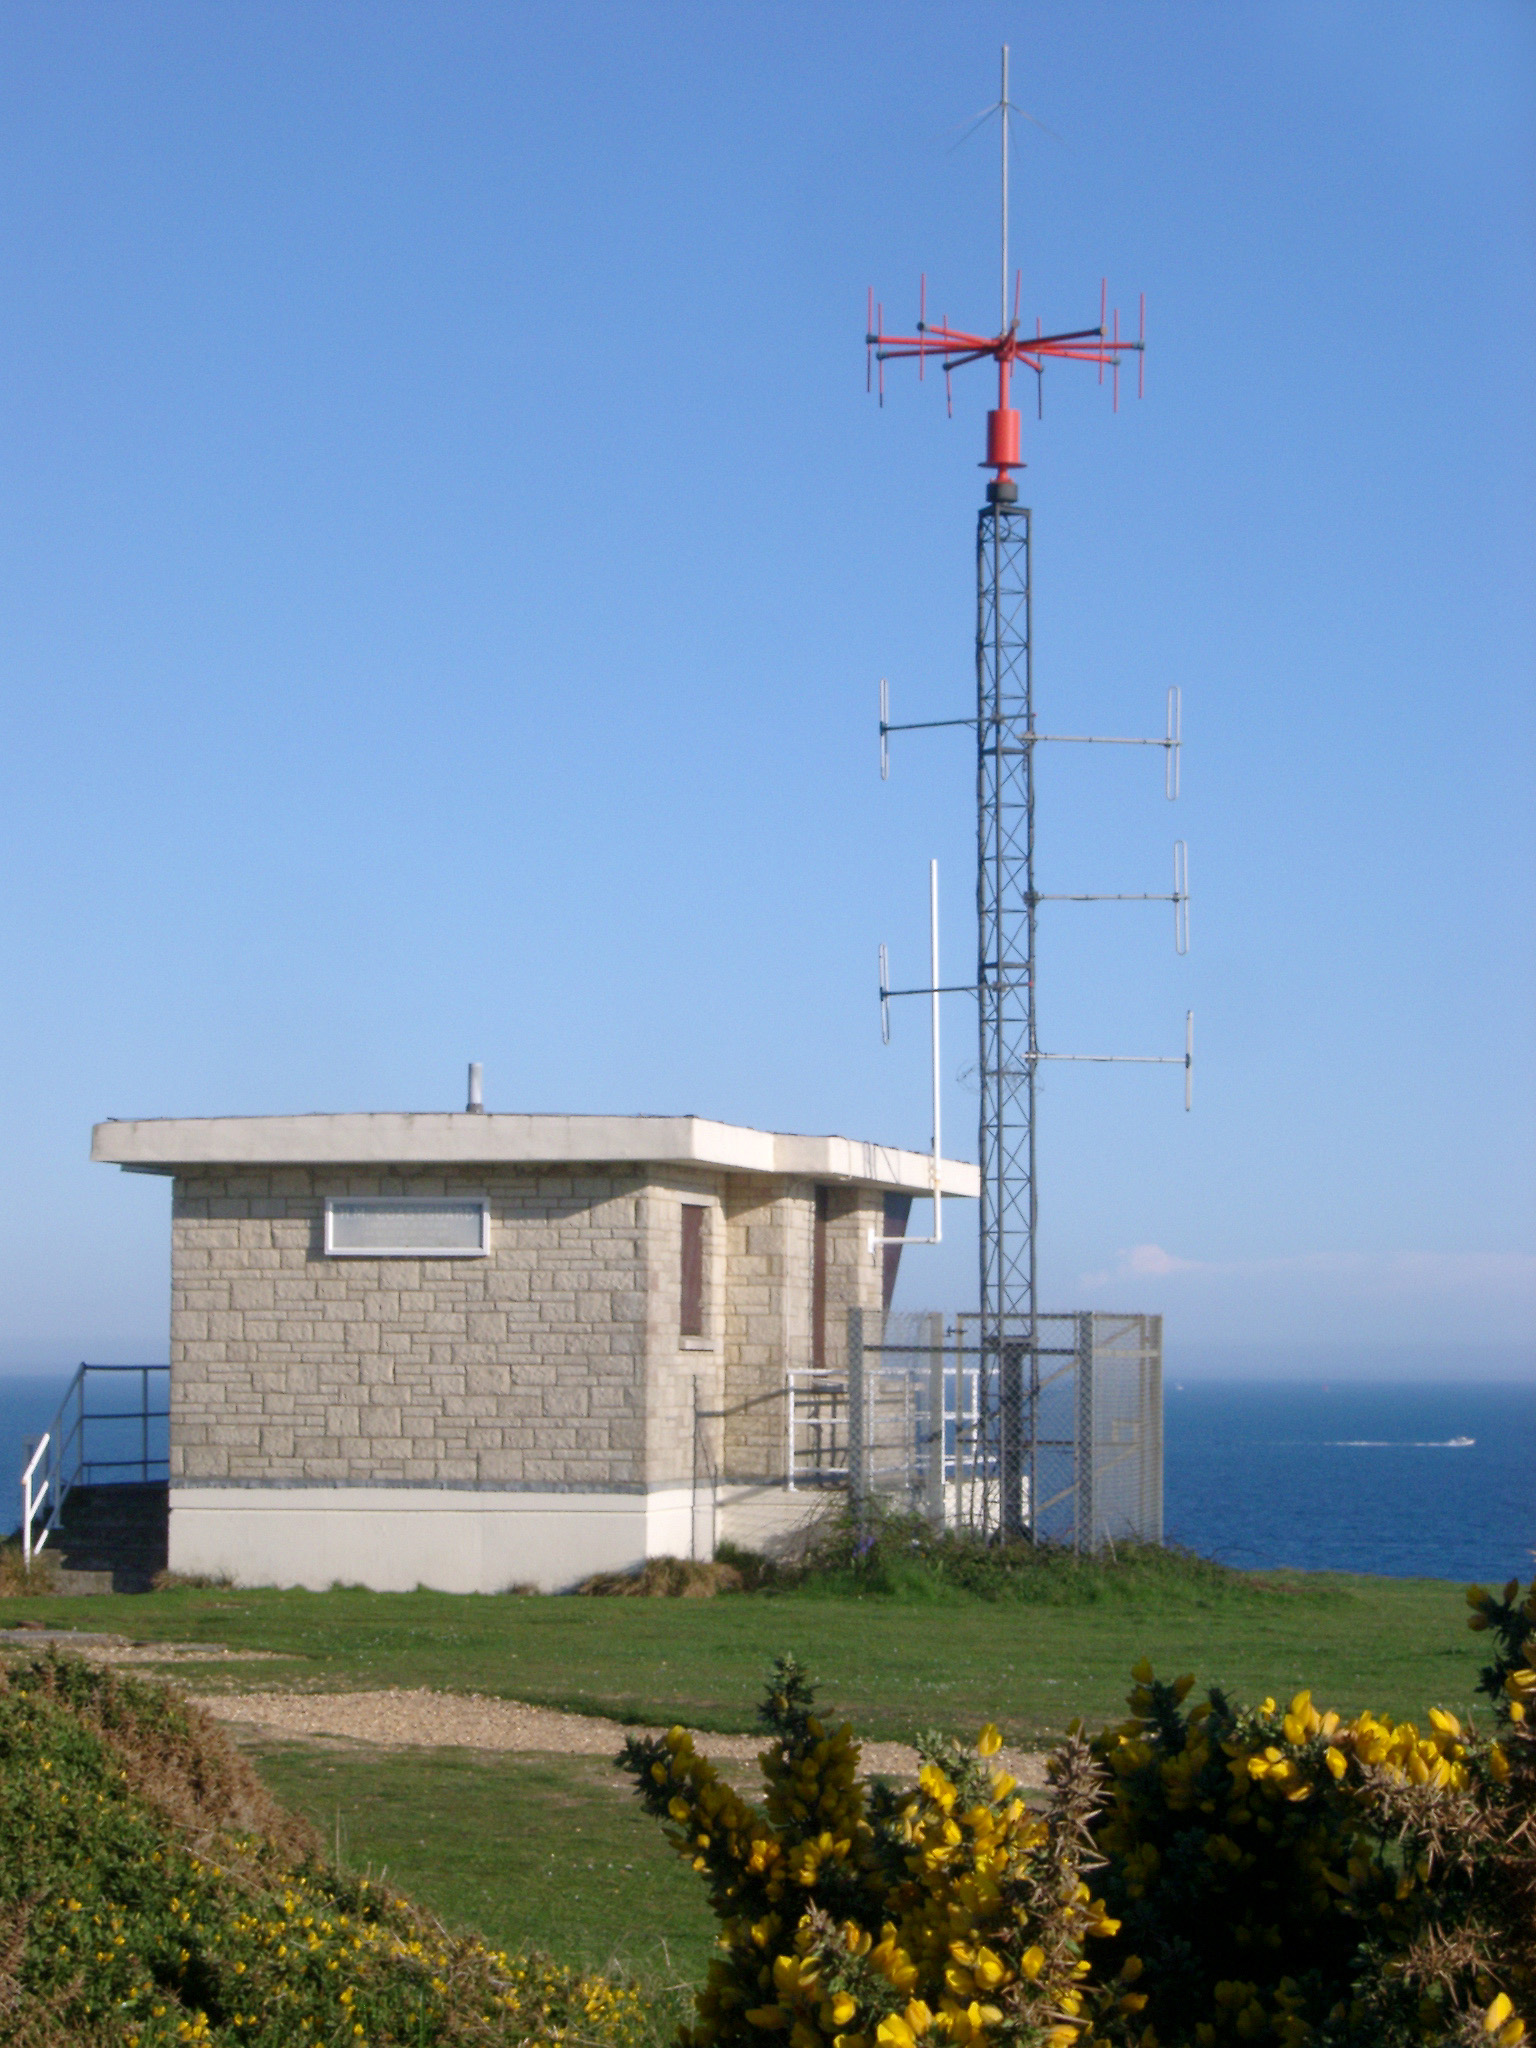 coastguard cliff top watch station near christchurch, dorset